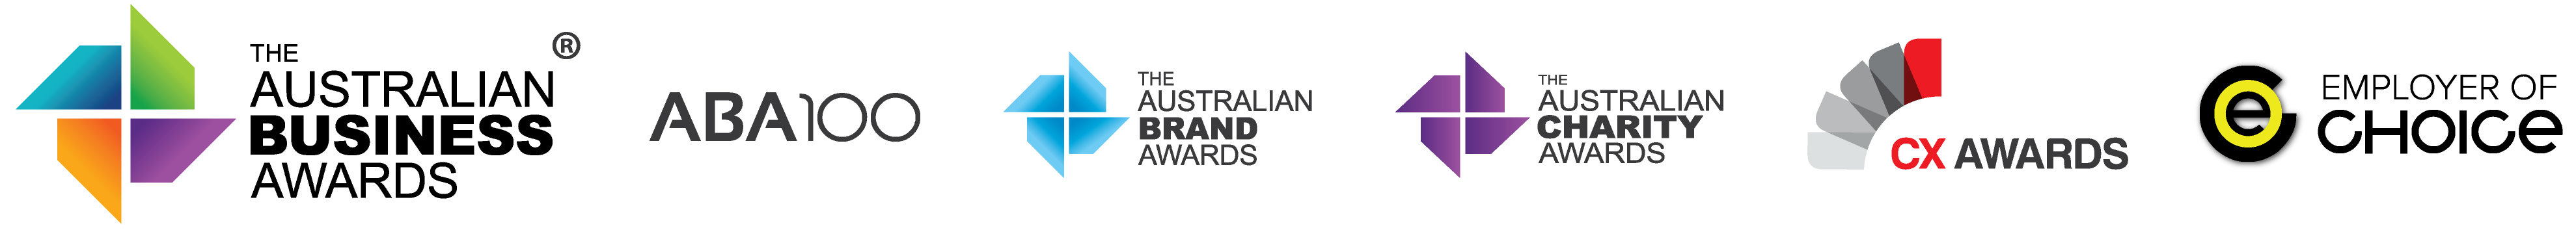 Australian CX Awards 2019 Logo